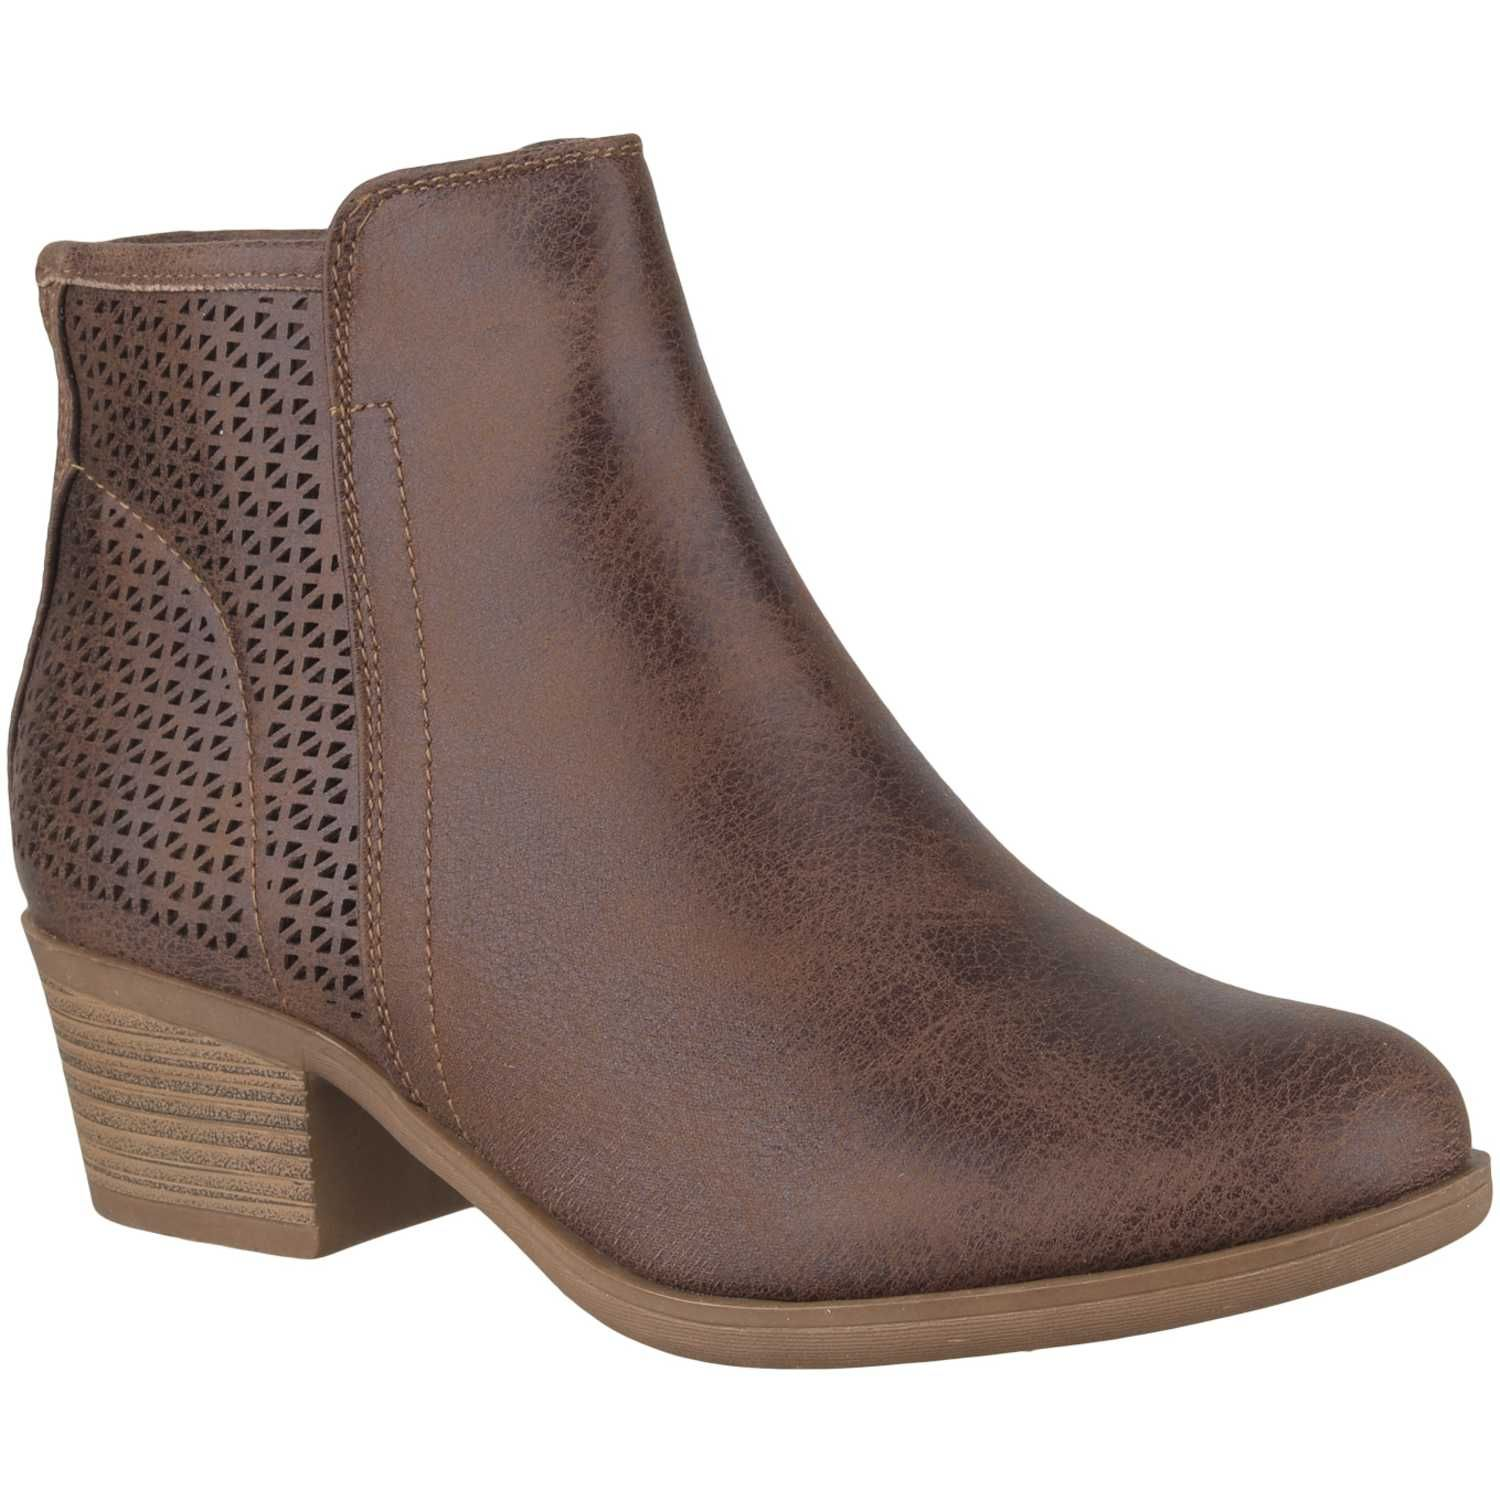 Platanitos Bt 6514botin De Mujer Kaboots In 2019 Boots Cute